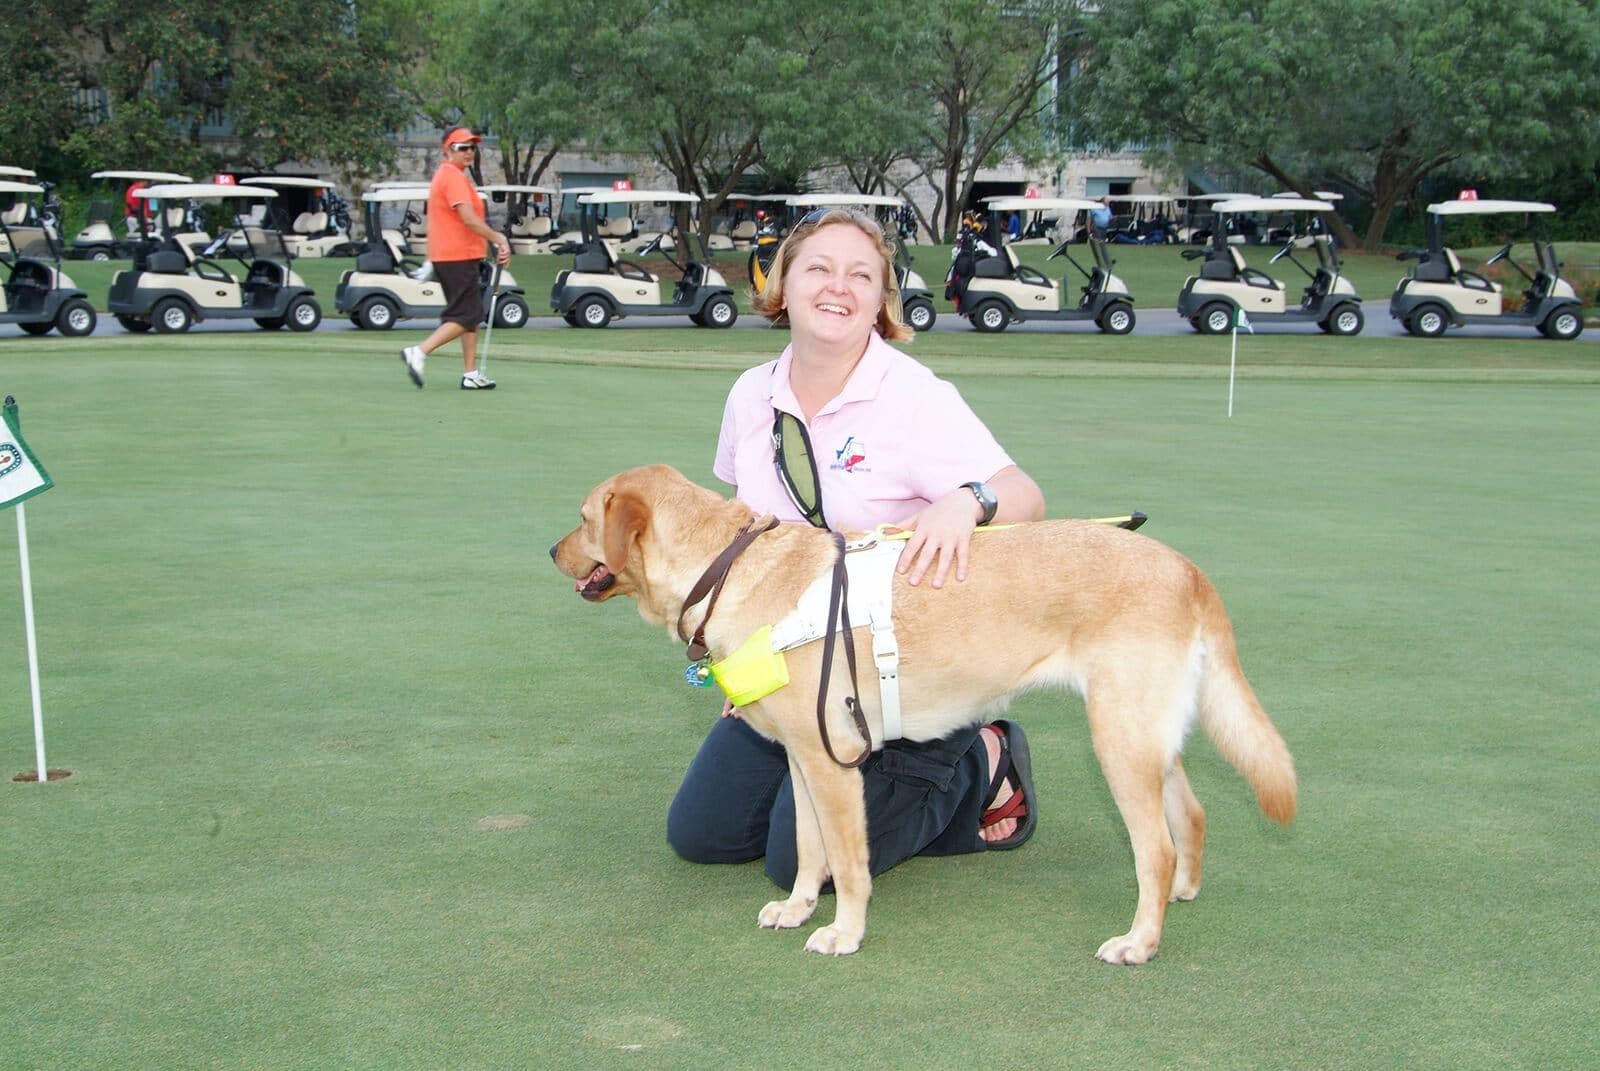 Guide Dog Instructor, Sandy, at a golf tournament with guide dog Autumn. Autumn is a yellow labrador with a white harness.